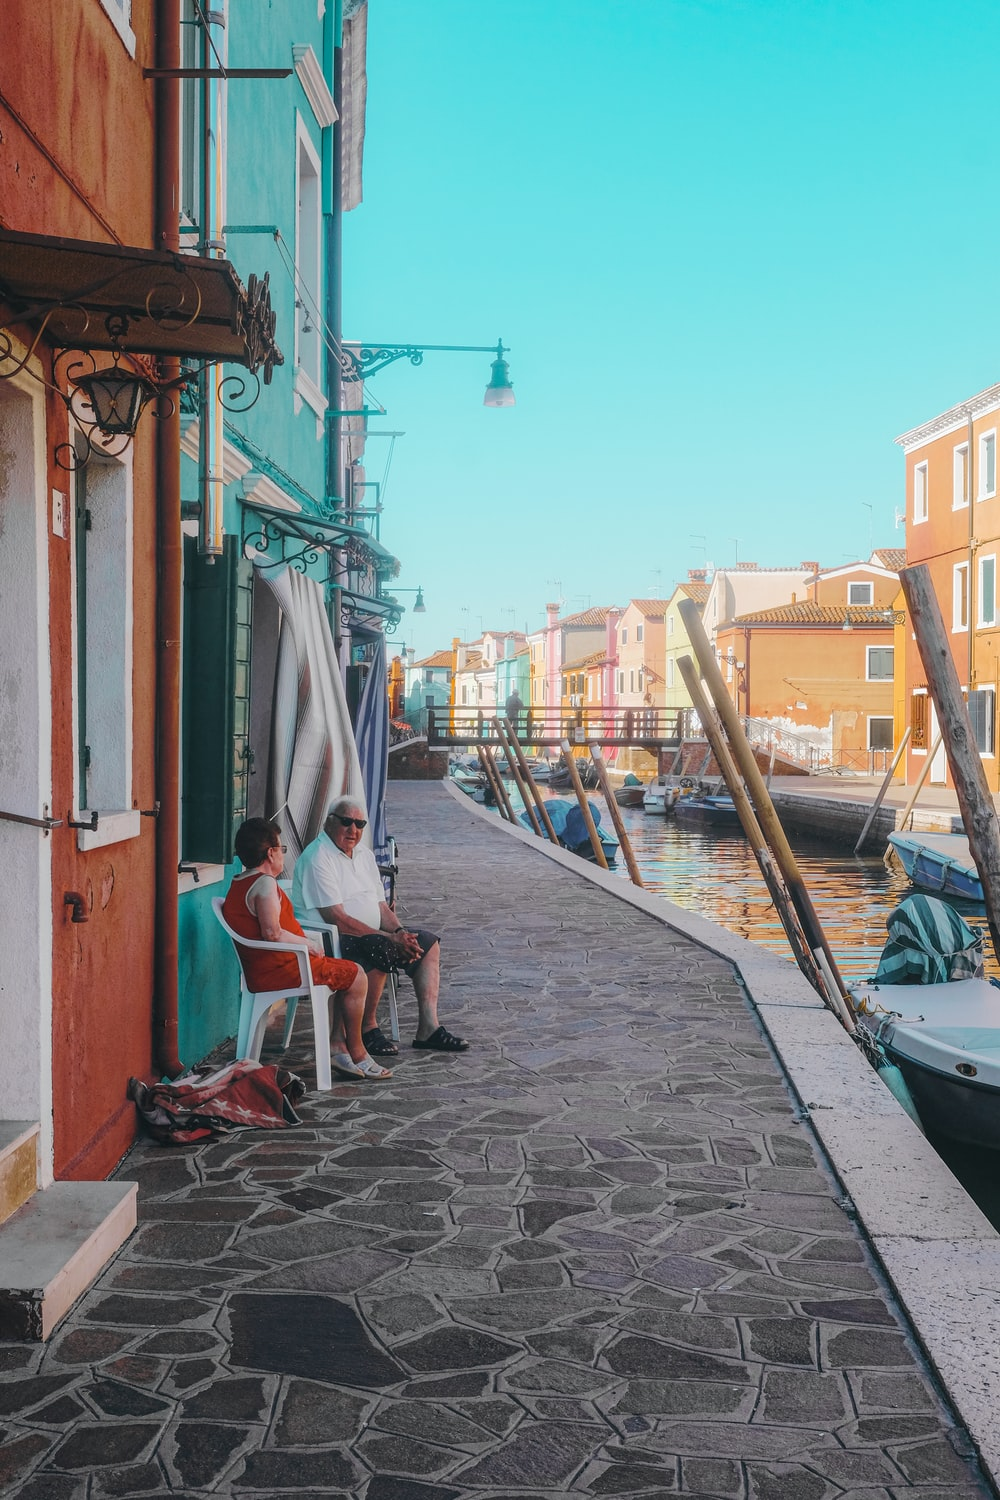 man in blue shirt sitting on chair near blue boat during daytime